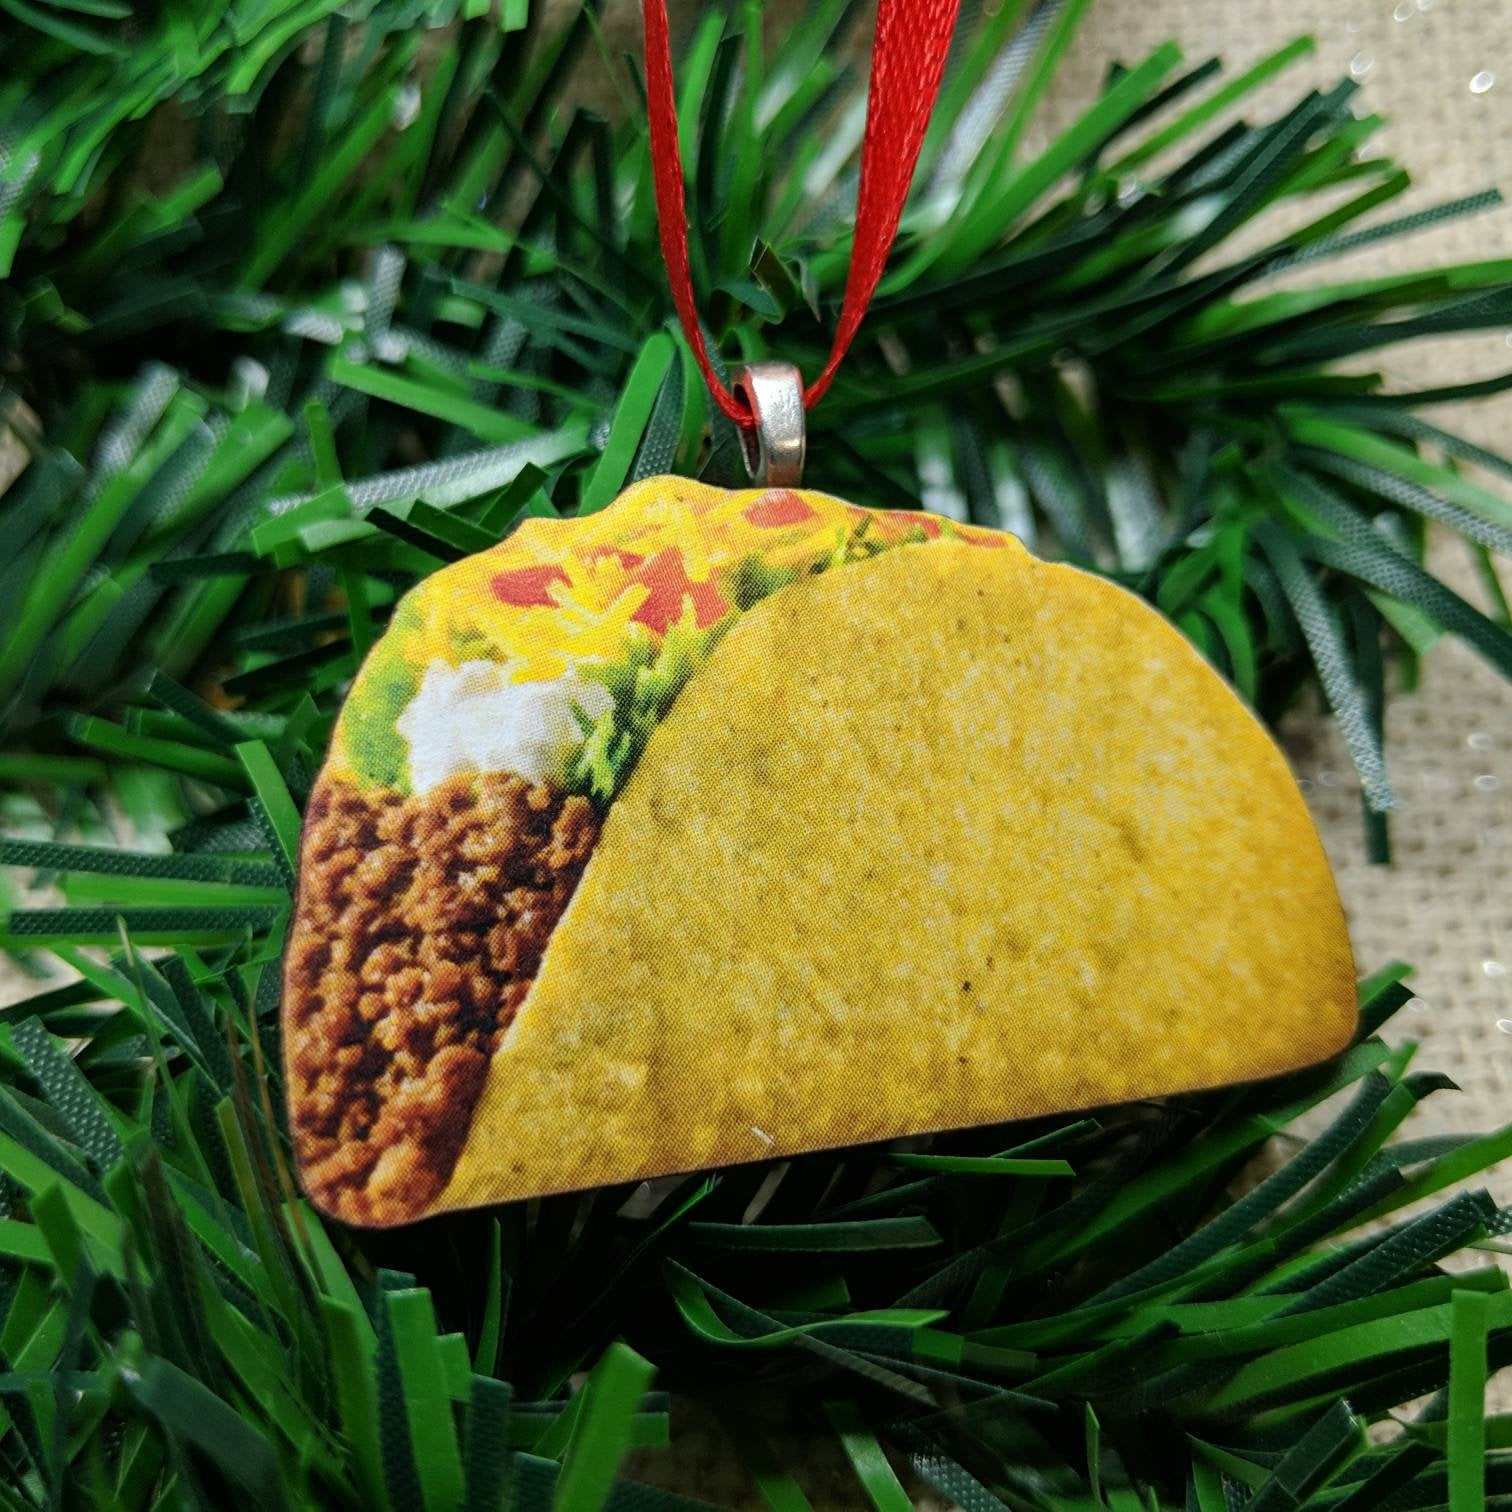 "Taco Ornament 2"" / Laser Cut Wood Ornament / Handmade Ornament / Food Ornament / Taco Christmas Ornament / Taco Lover Gift"